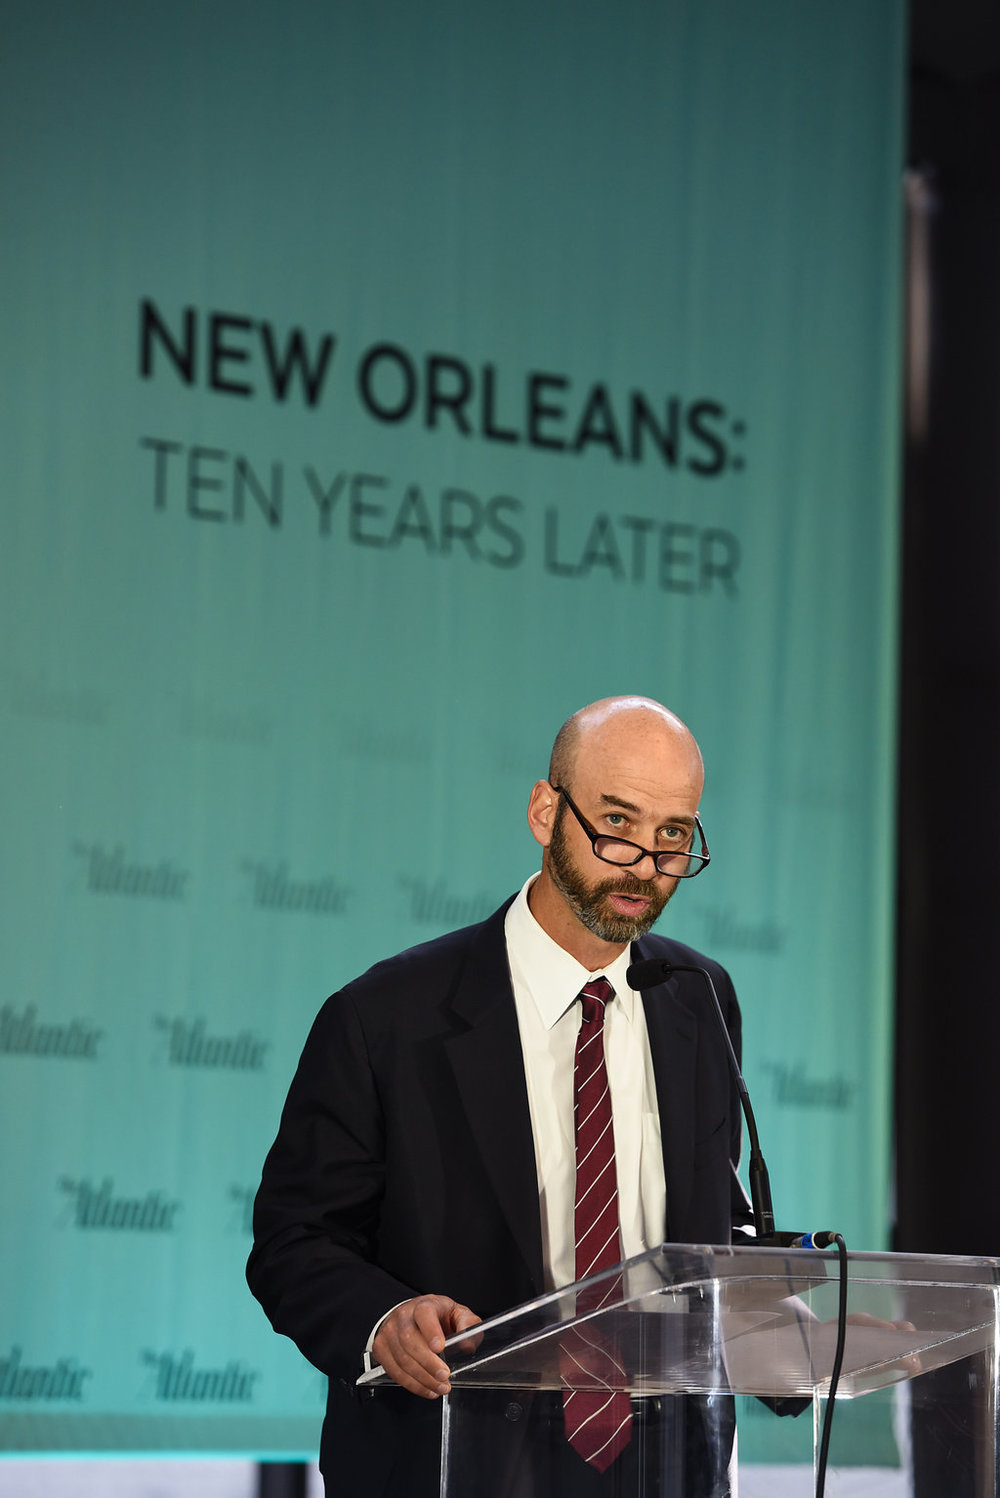 Katrina10 Summit in New Orleans by Adrienne Battistella 2015